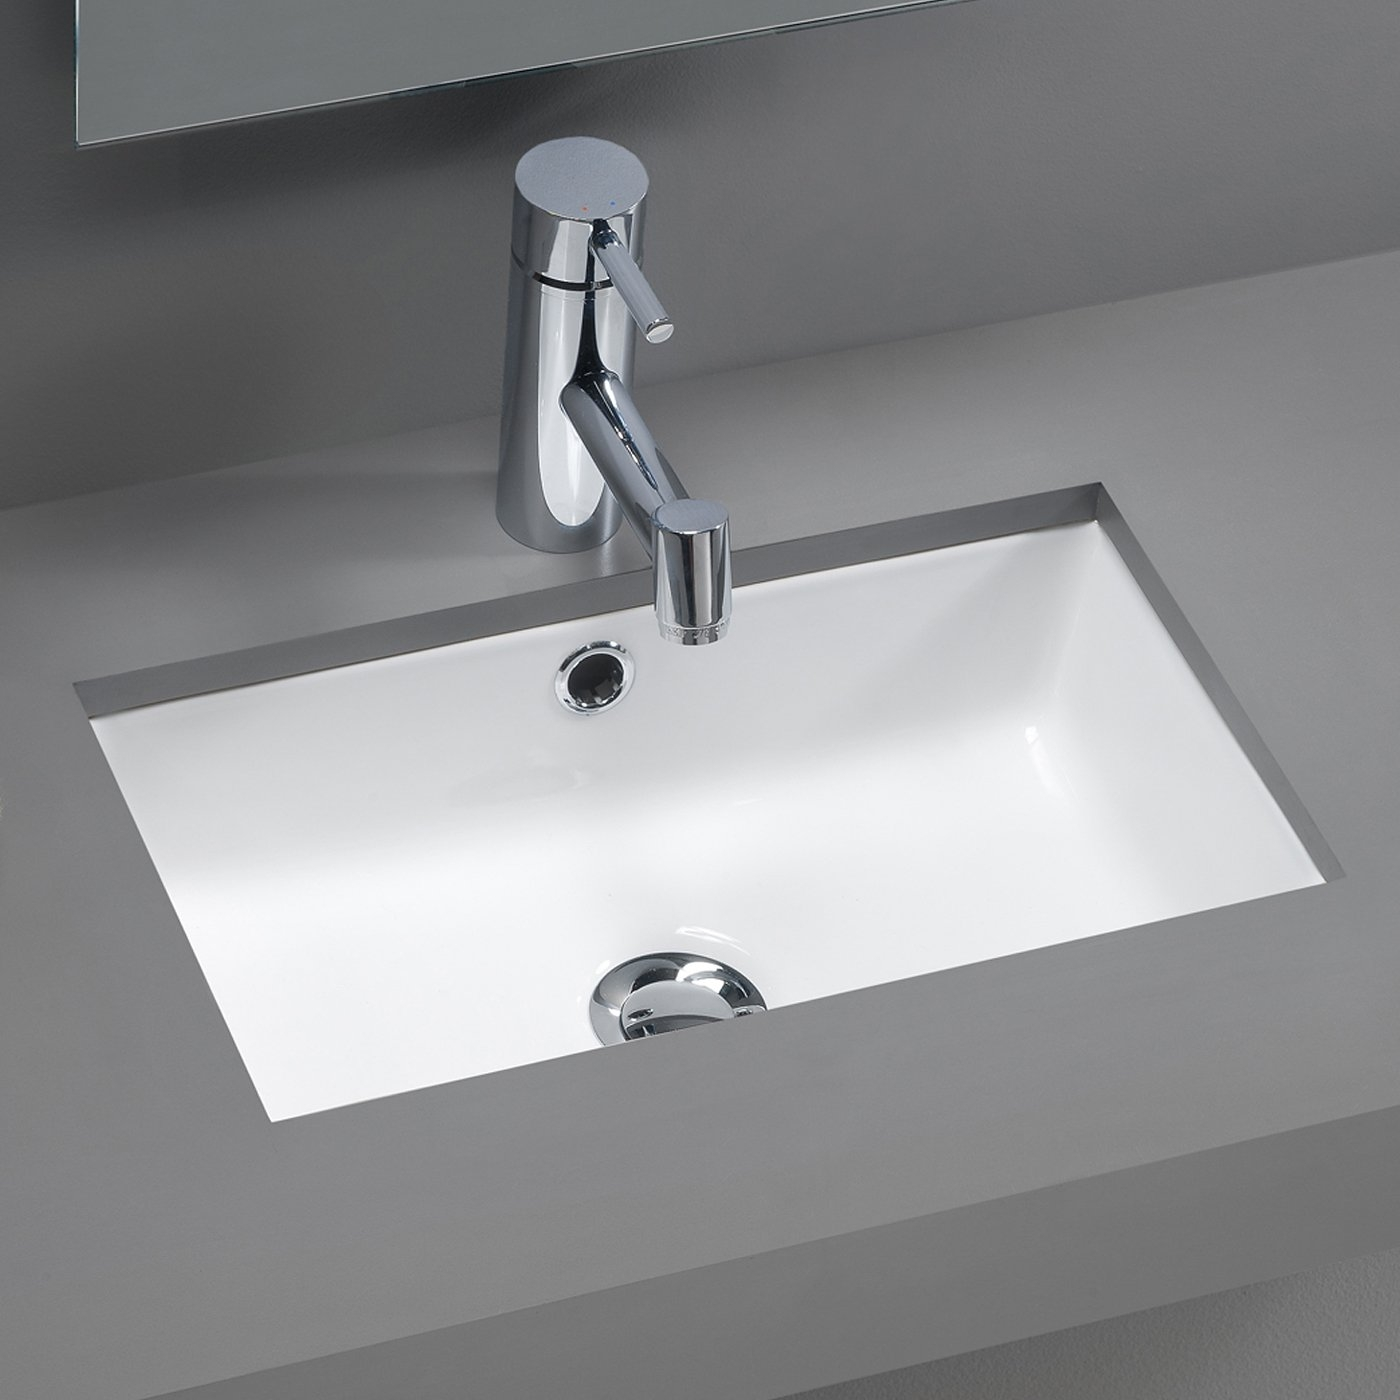 Ideas, fresh unique bathroom sink faucets 13582 with size 1400 x 1400  .